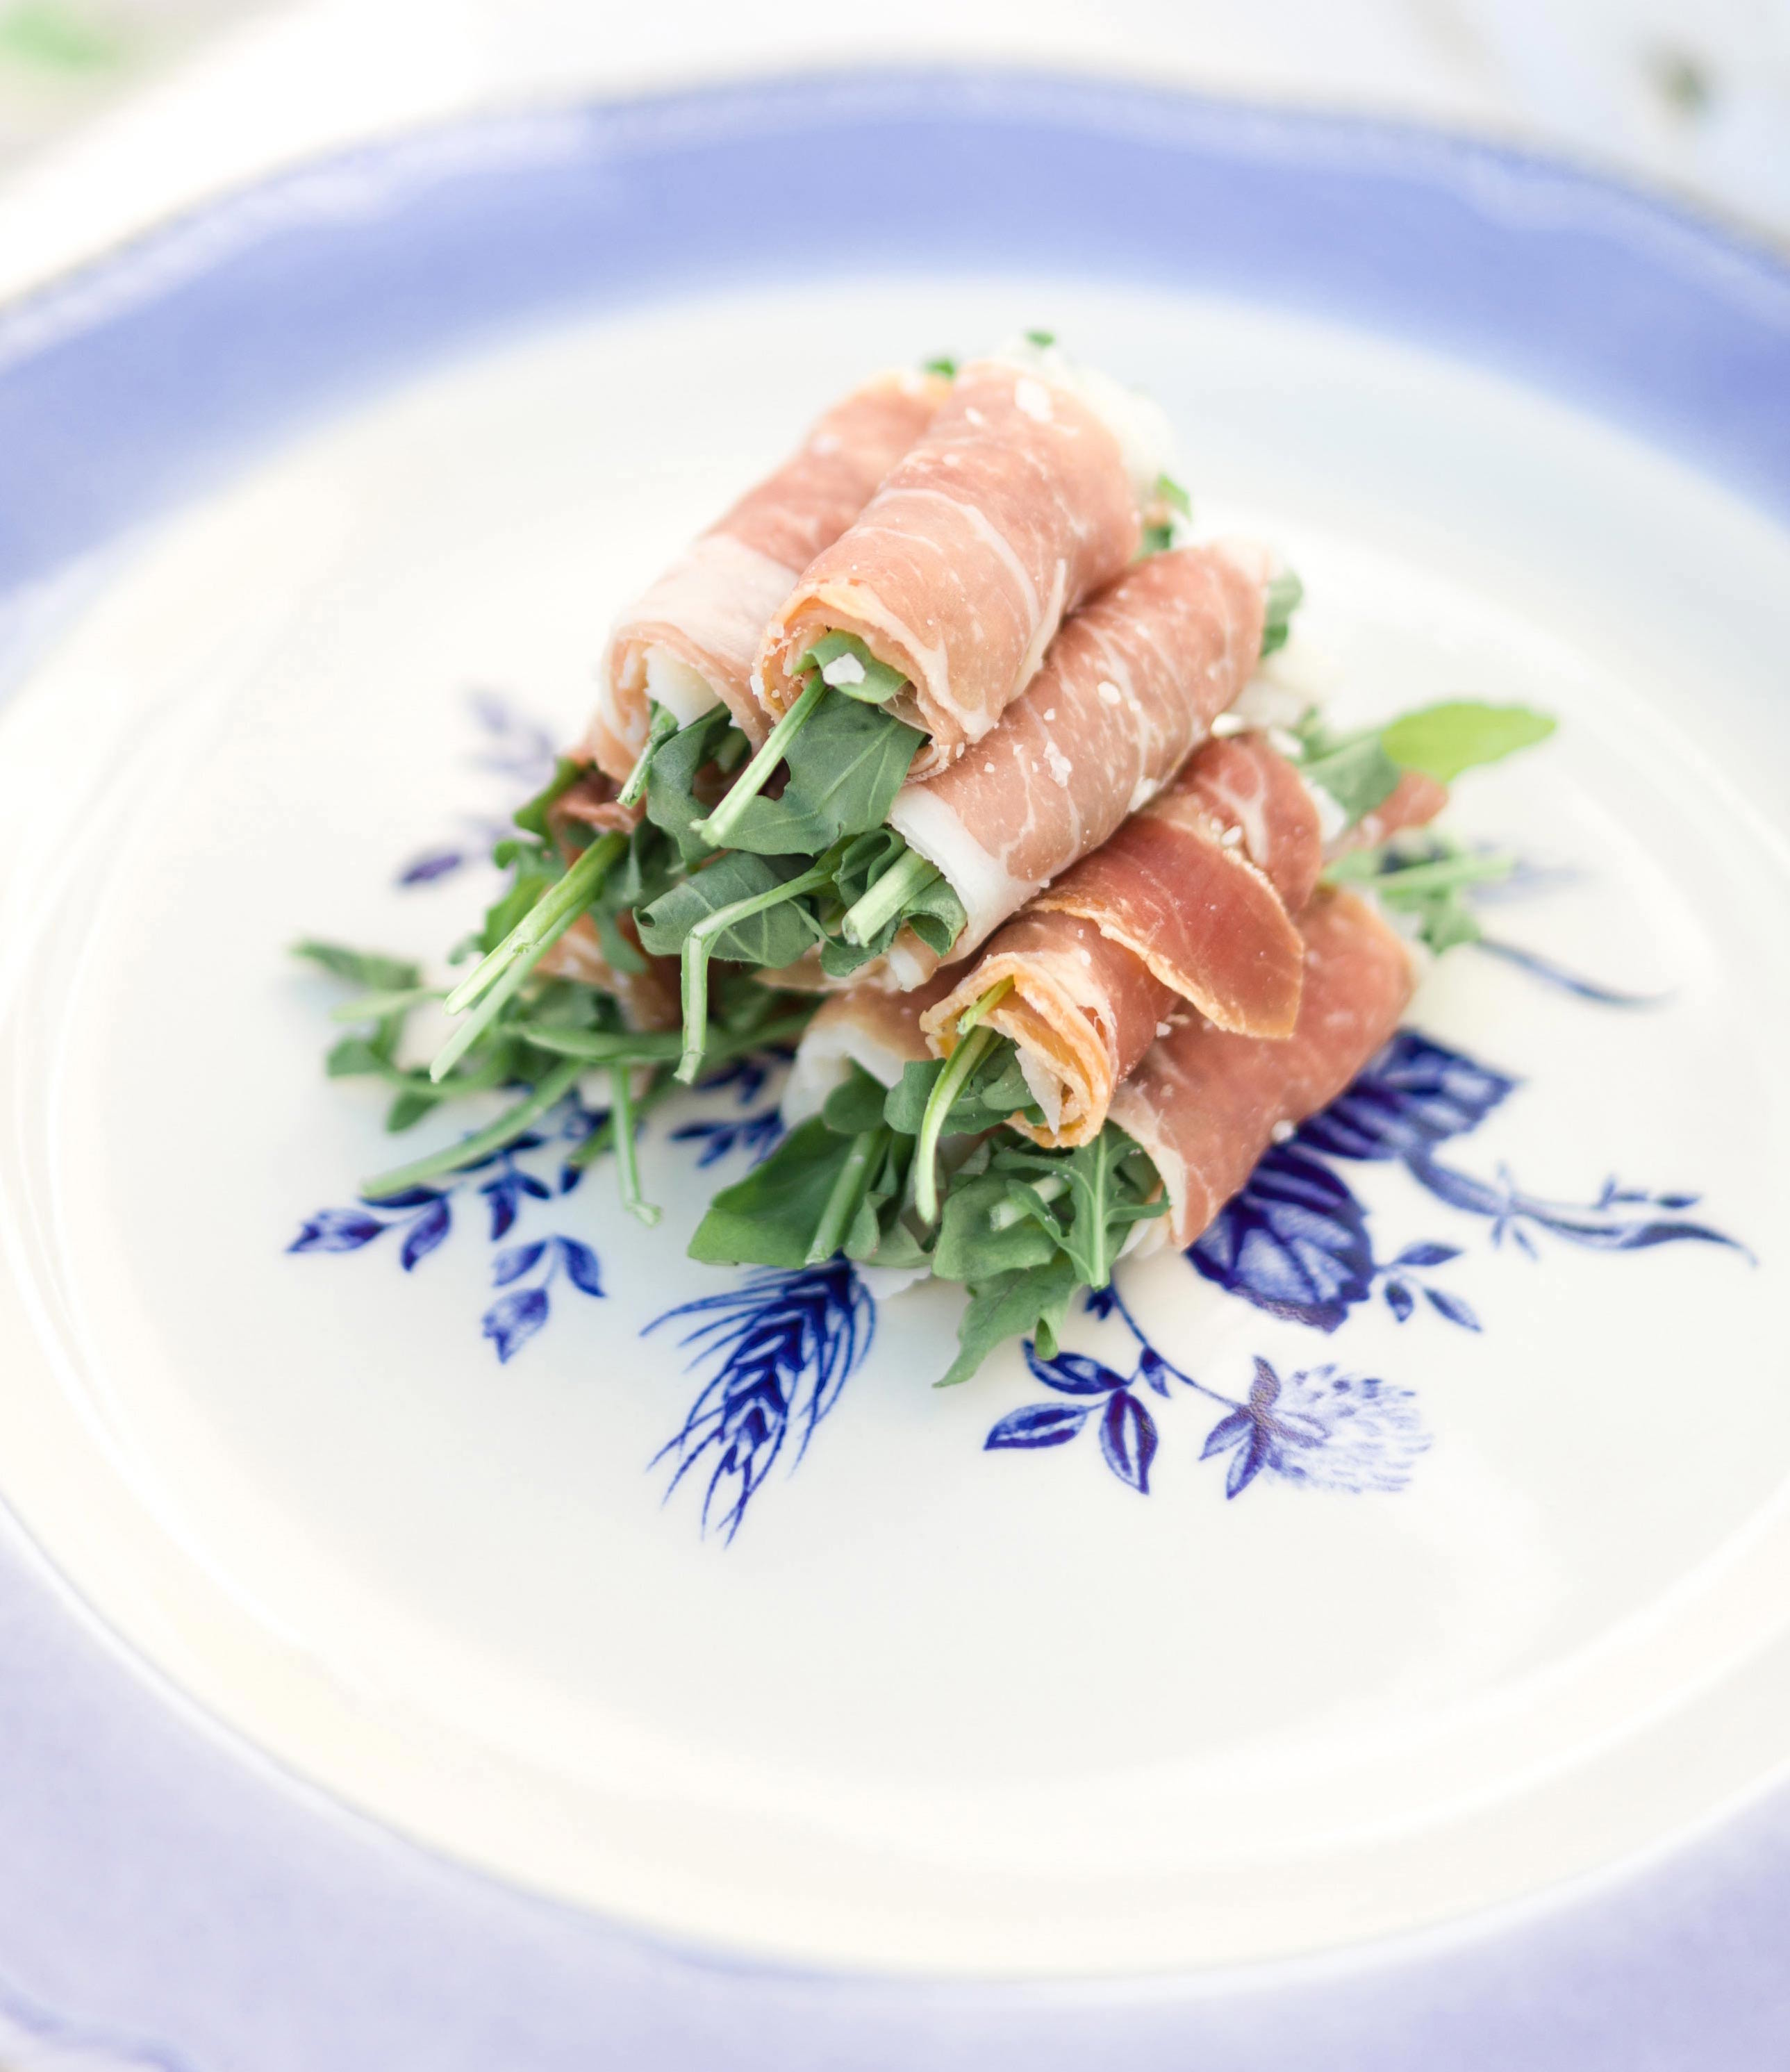 Arugla wrapped with prosciutto appetizer